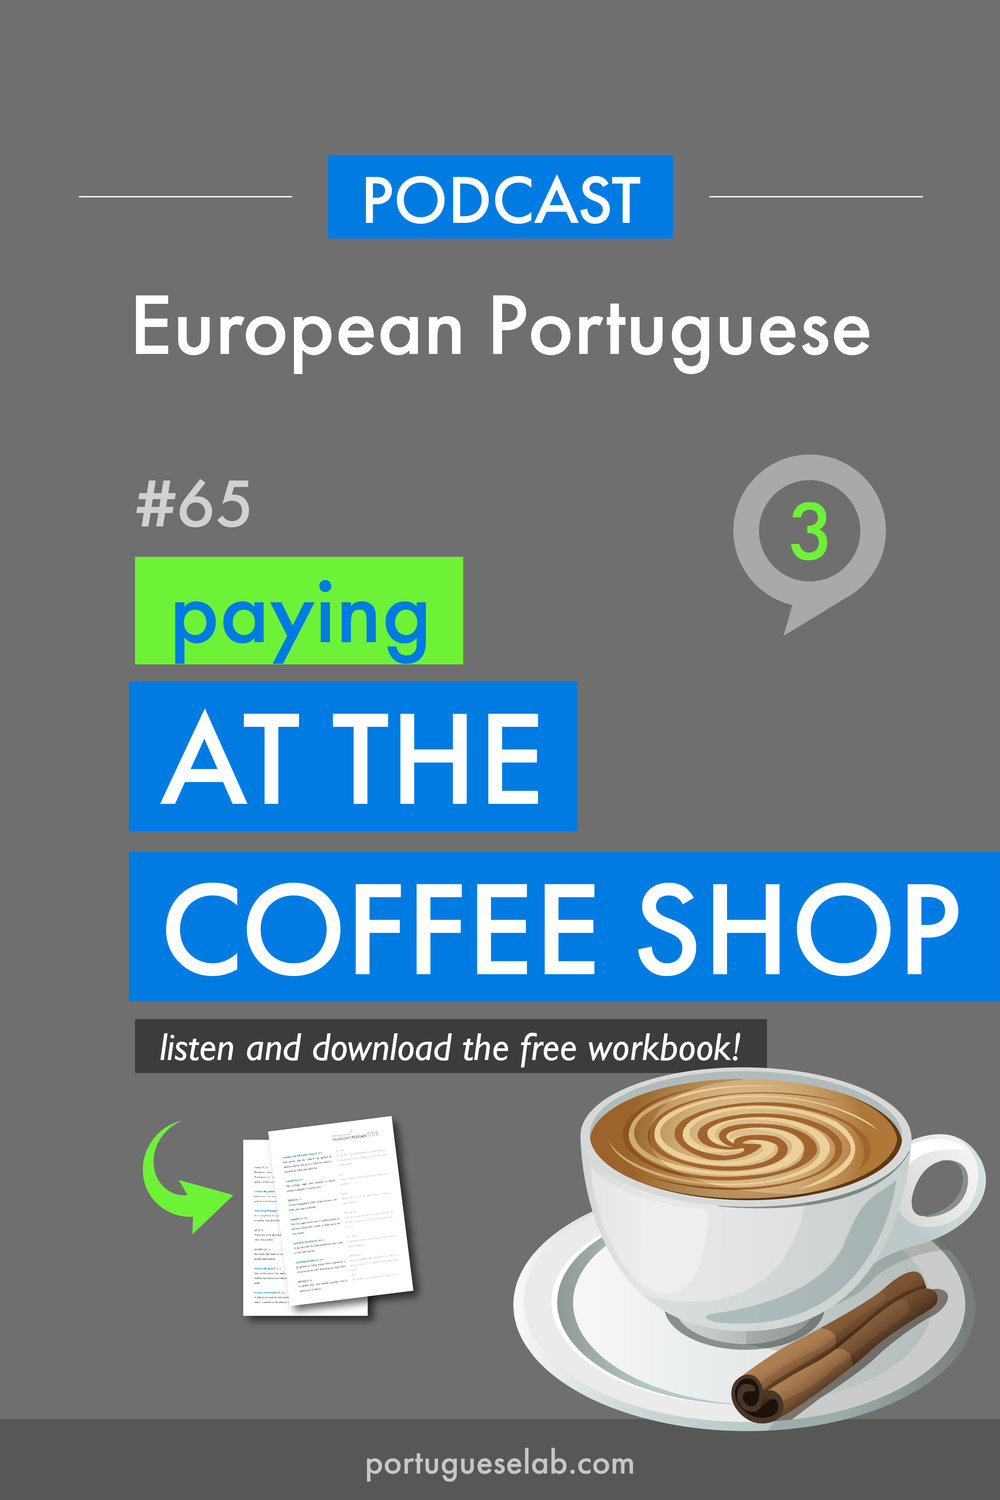 Portuguese Lab Podcast - European Portuguese - 65 - Paying at the coffee shop.jpg